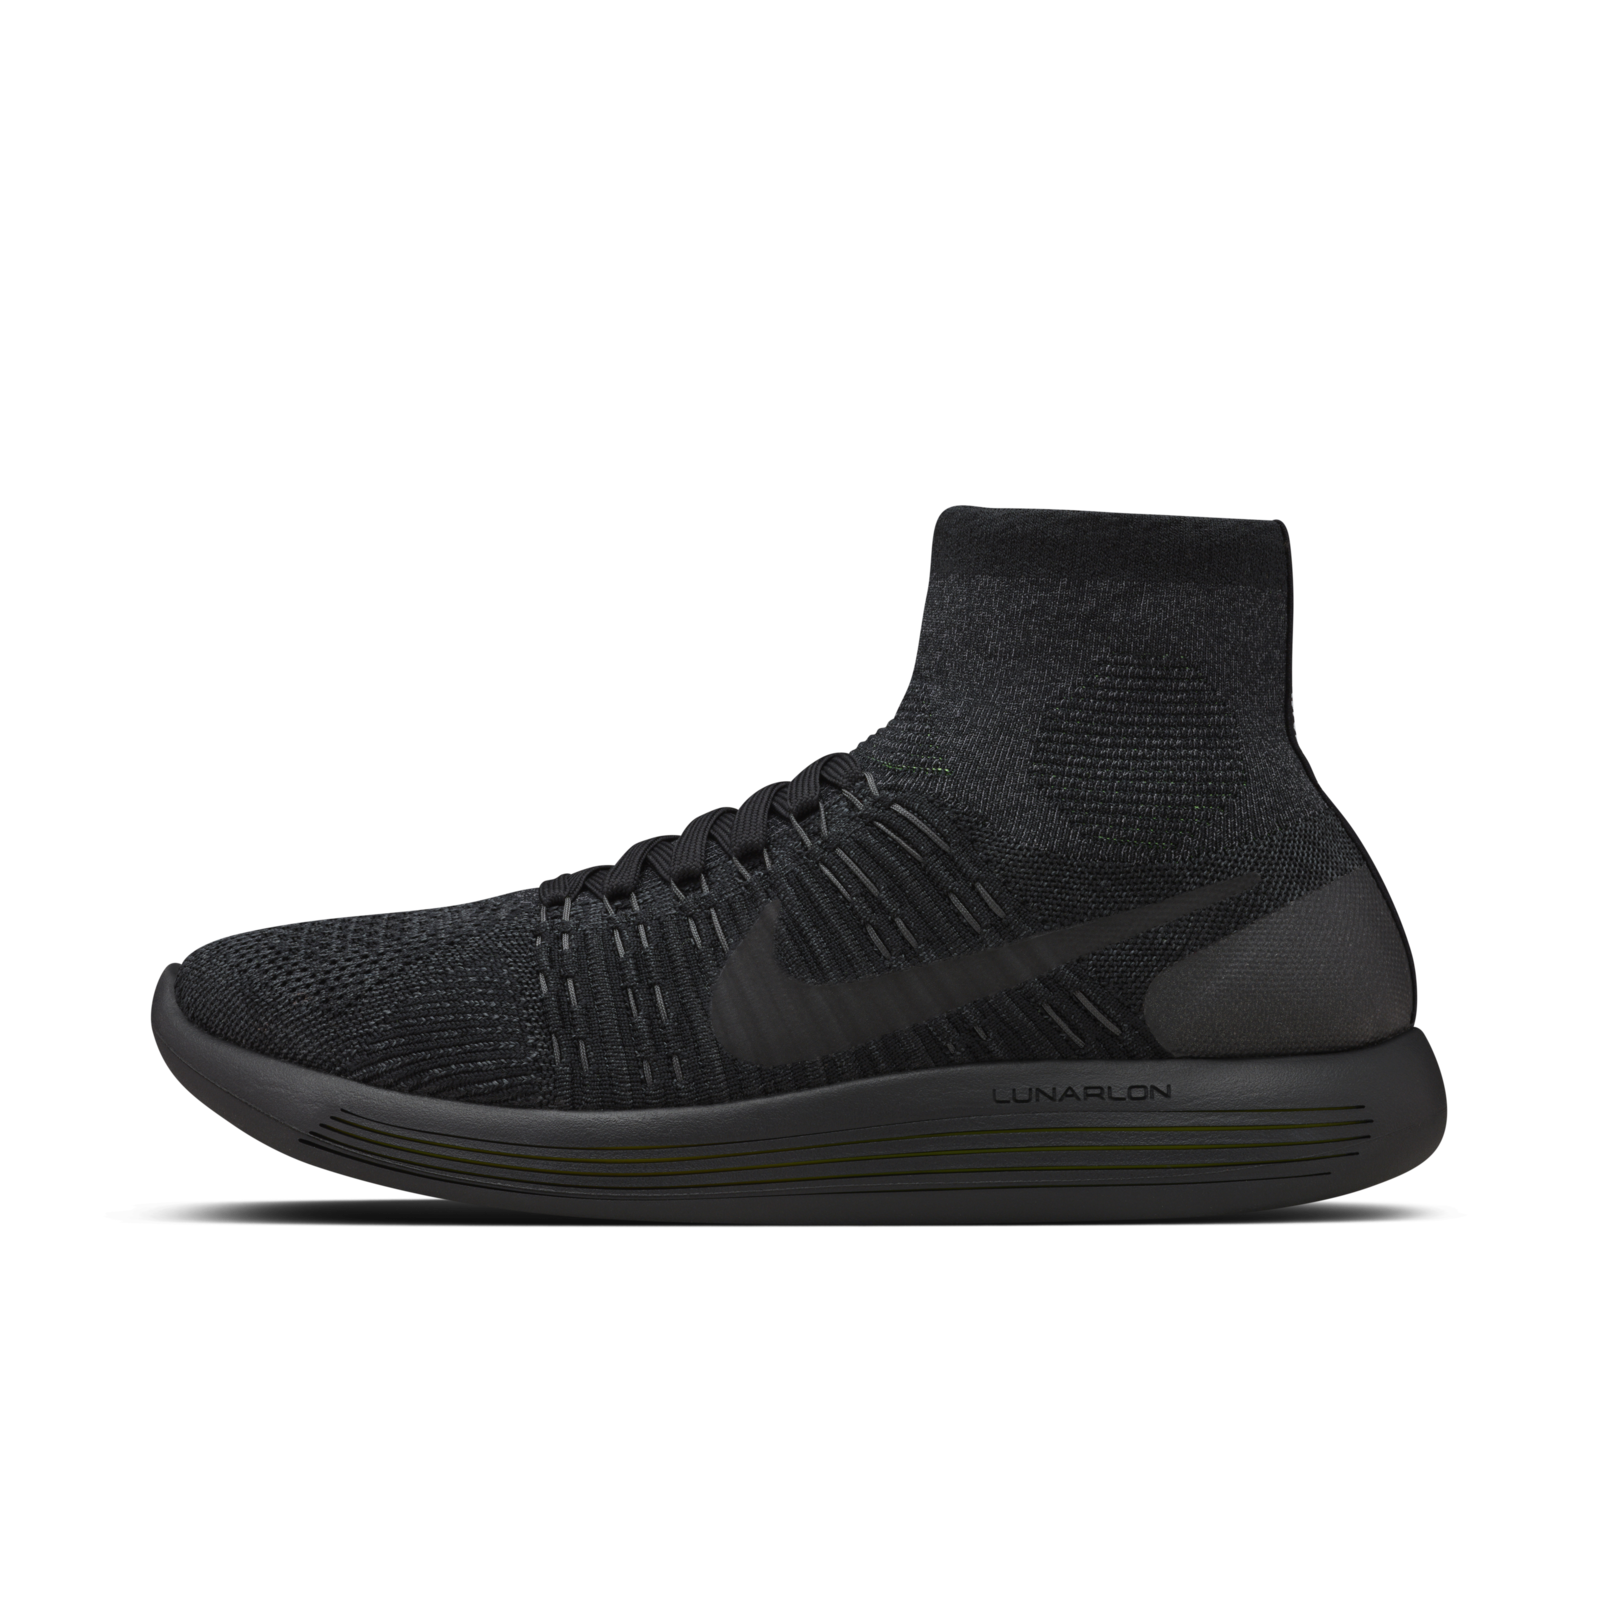 bdad9c24435d Mobile Gallery Image ... Nike LunarEpic Flyknit Mens Running Shoes  BlackAnthracite ...